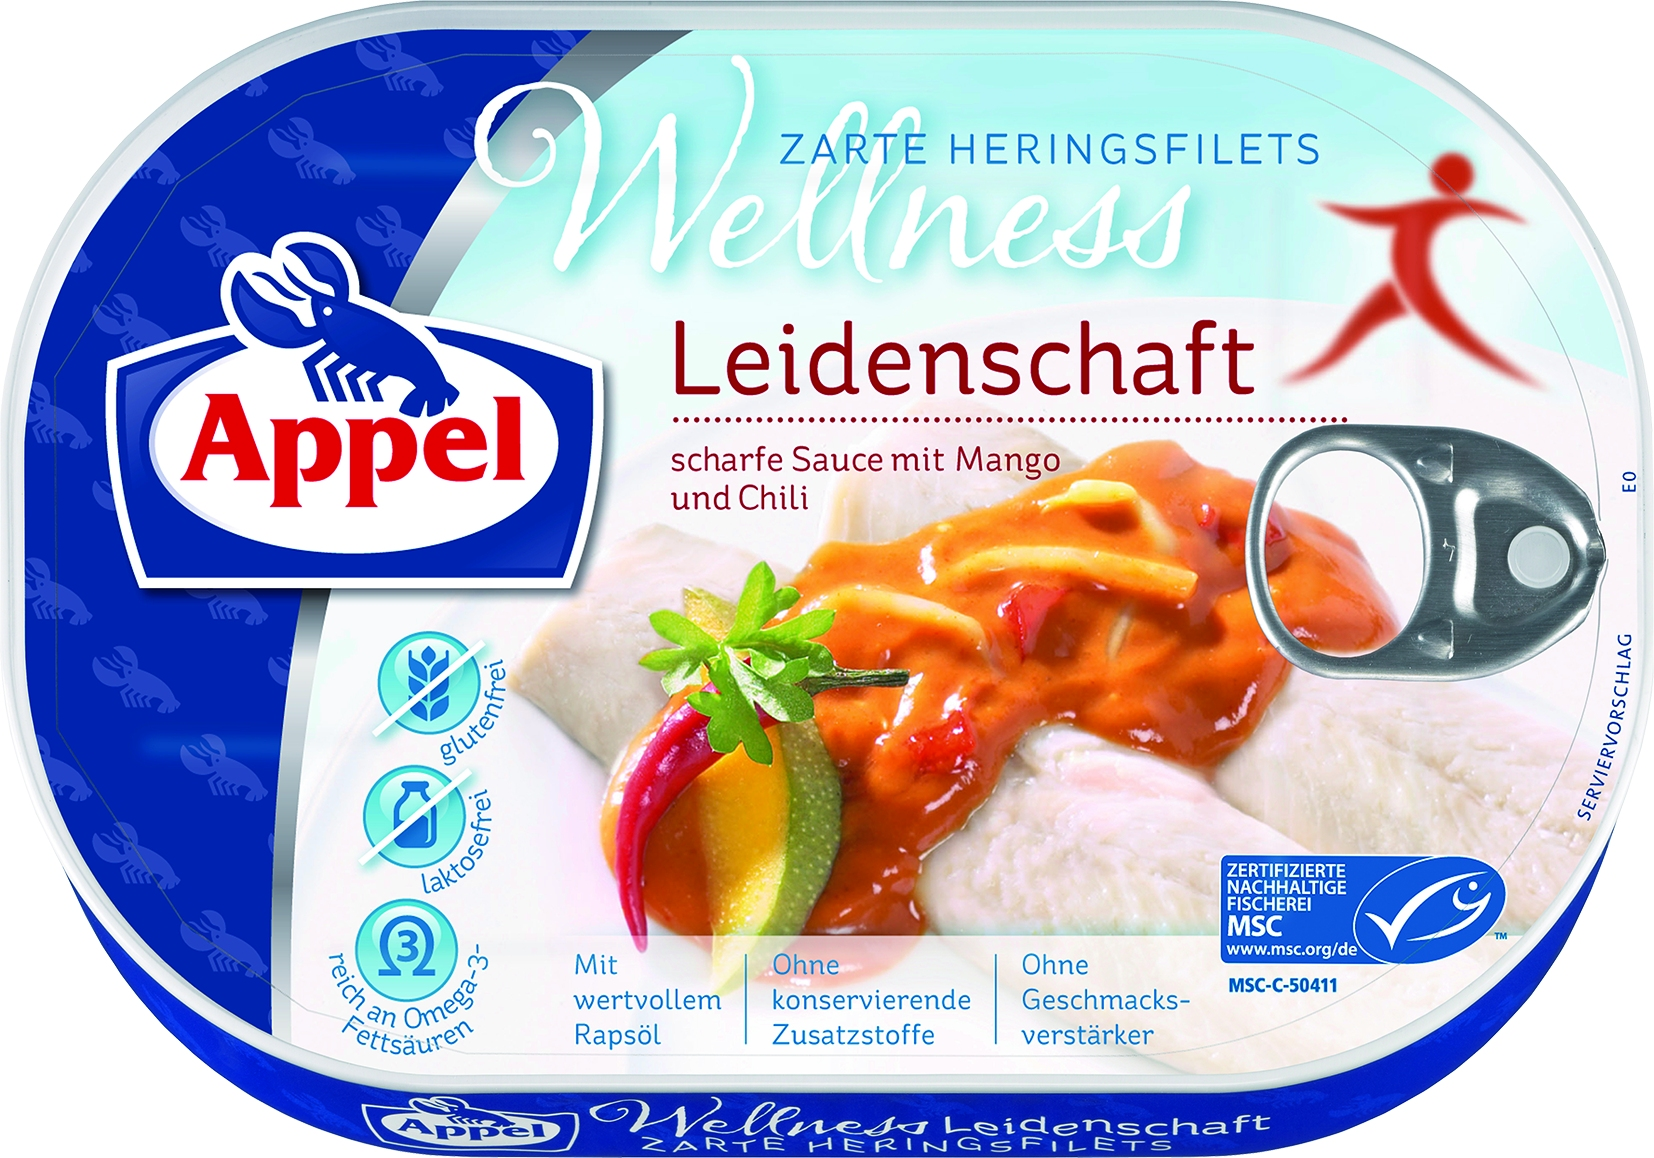 MSC Heringsfilets Wellness Leidenschaft in Chili/Mango